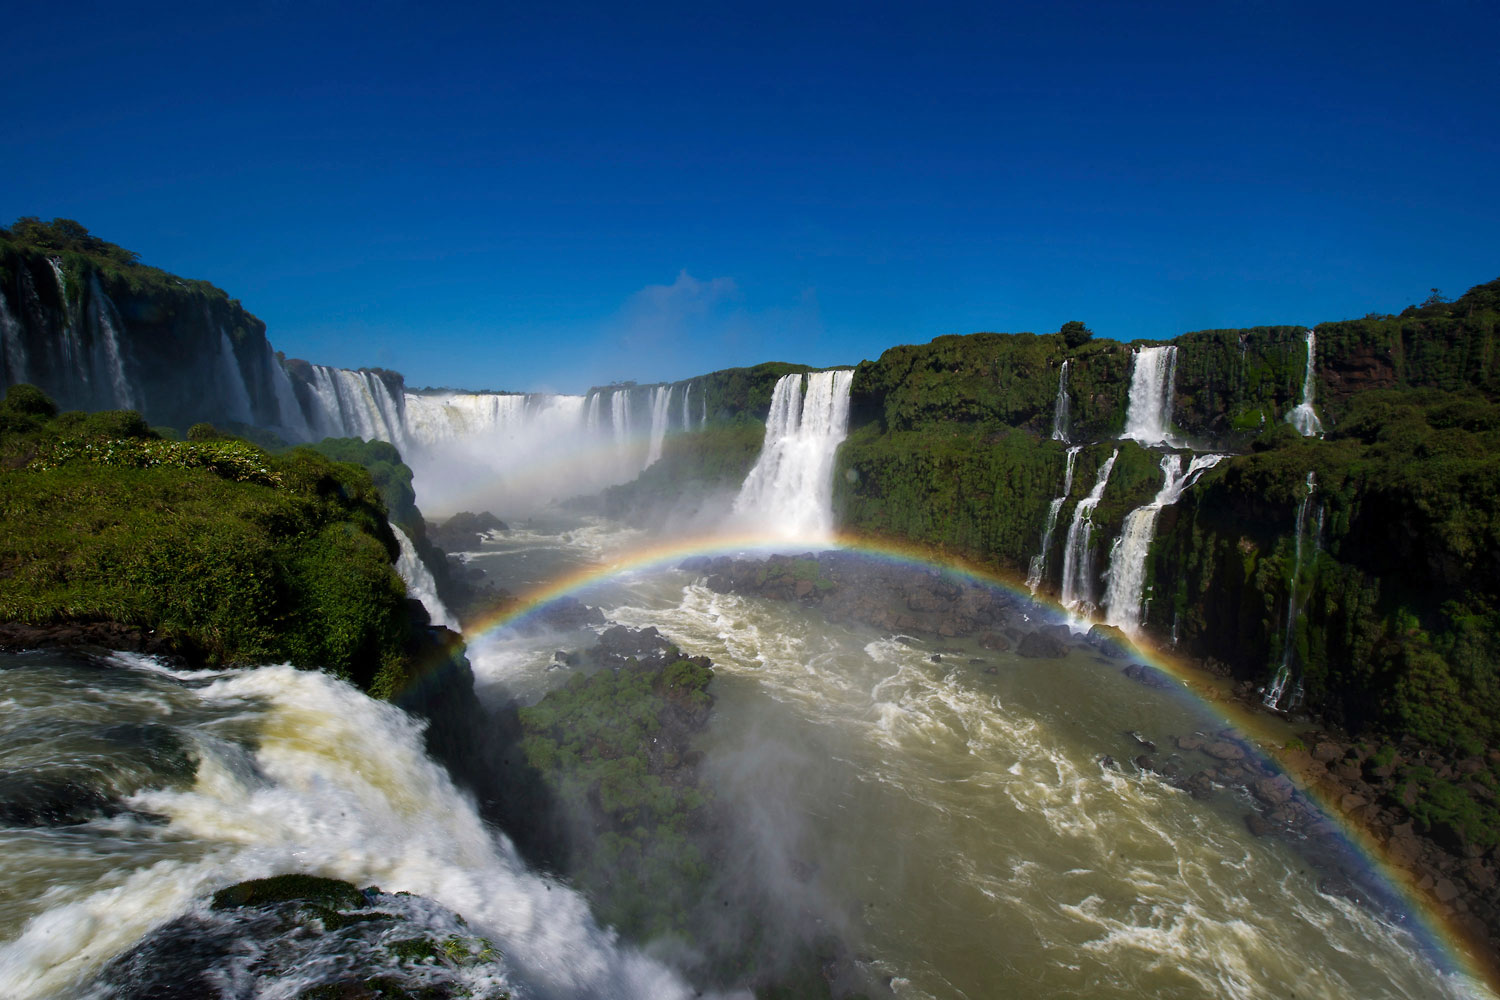 The Iguazu Falls, surrounded by lush forest and exotic wildlife, are a set of nearly 300 waterfalls in the Iguazu River located on the Brazil-Argentina border.